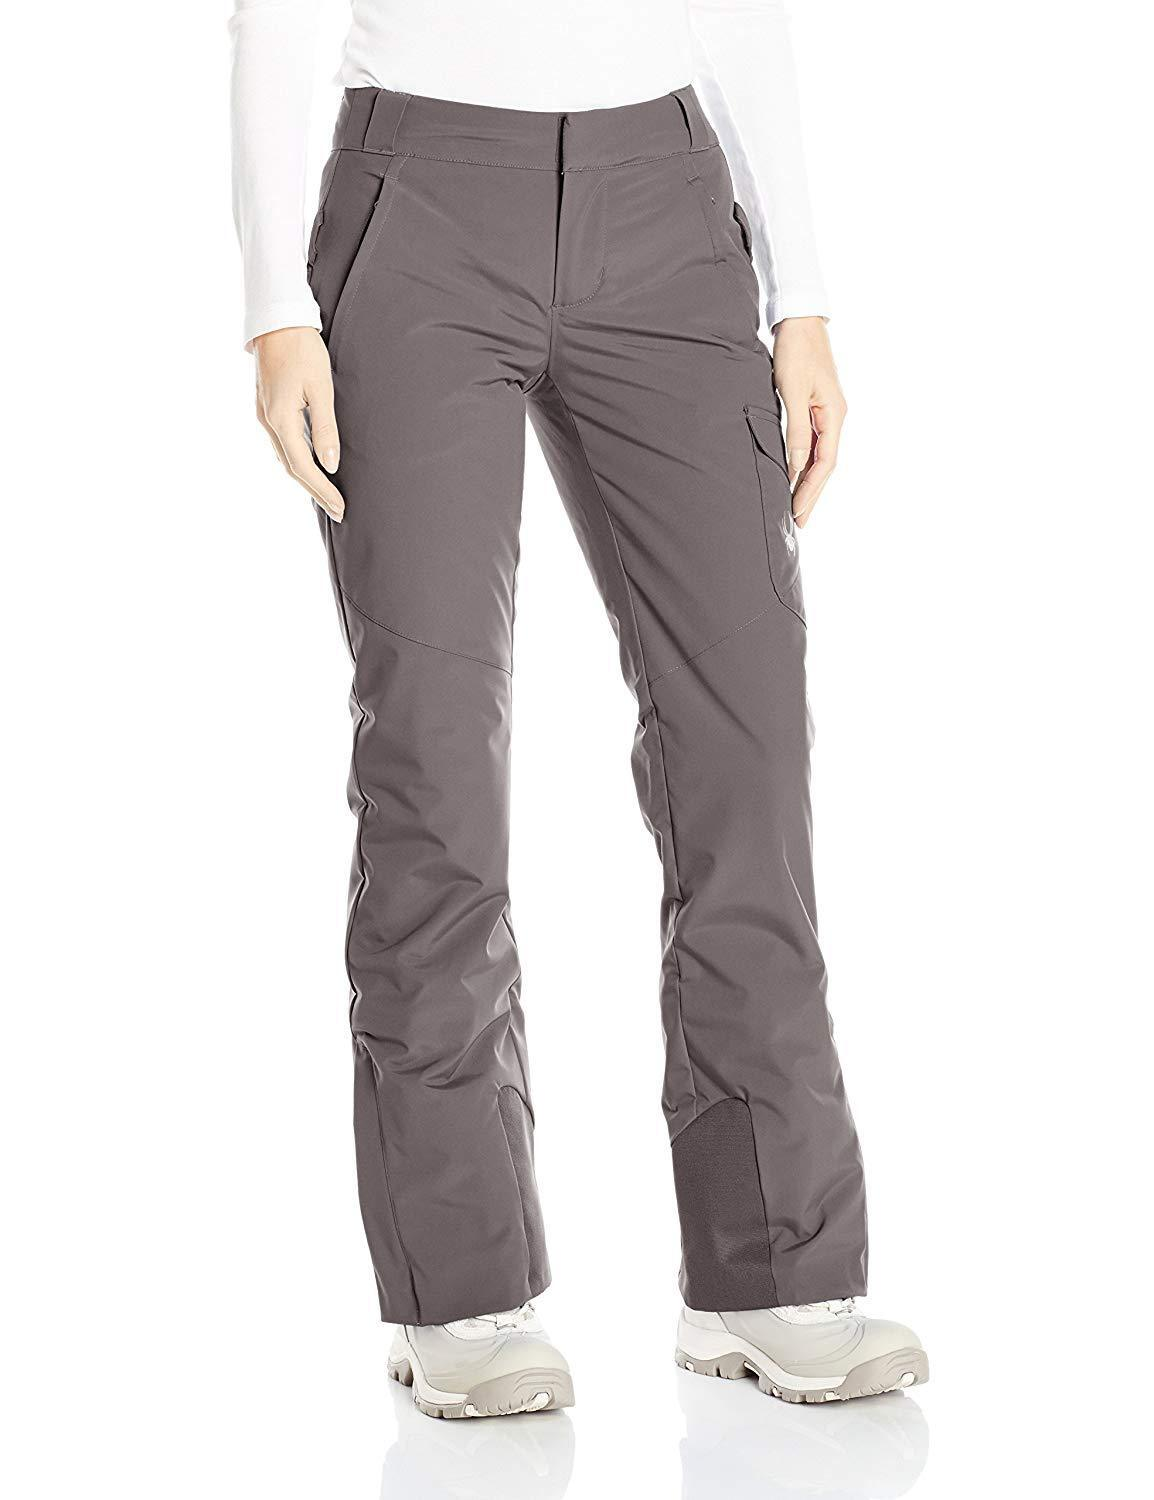 Spyder Women's Me Tailored Fit Pants, Ski Snowboarding Pant, Size 4, Inseam Reg